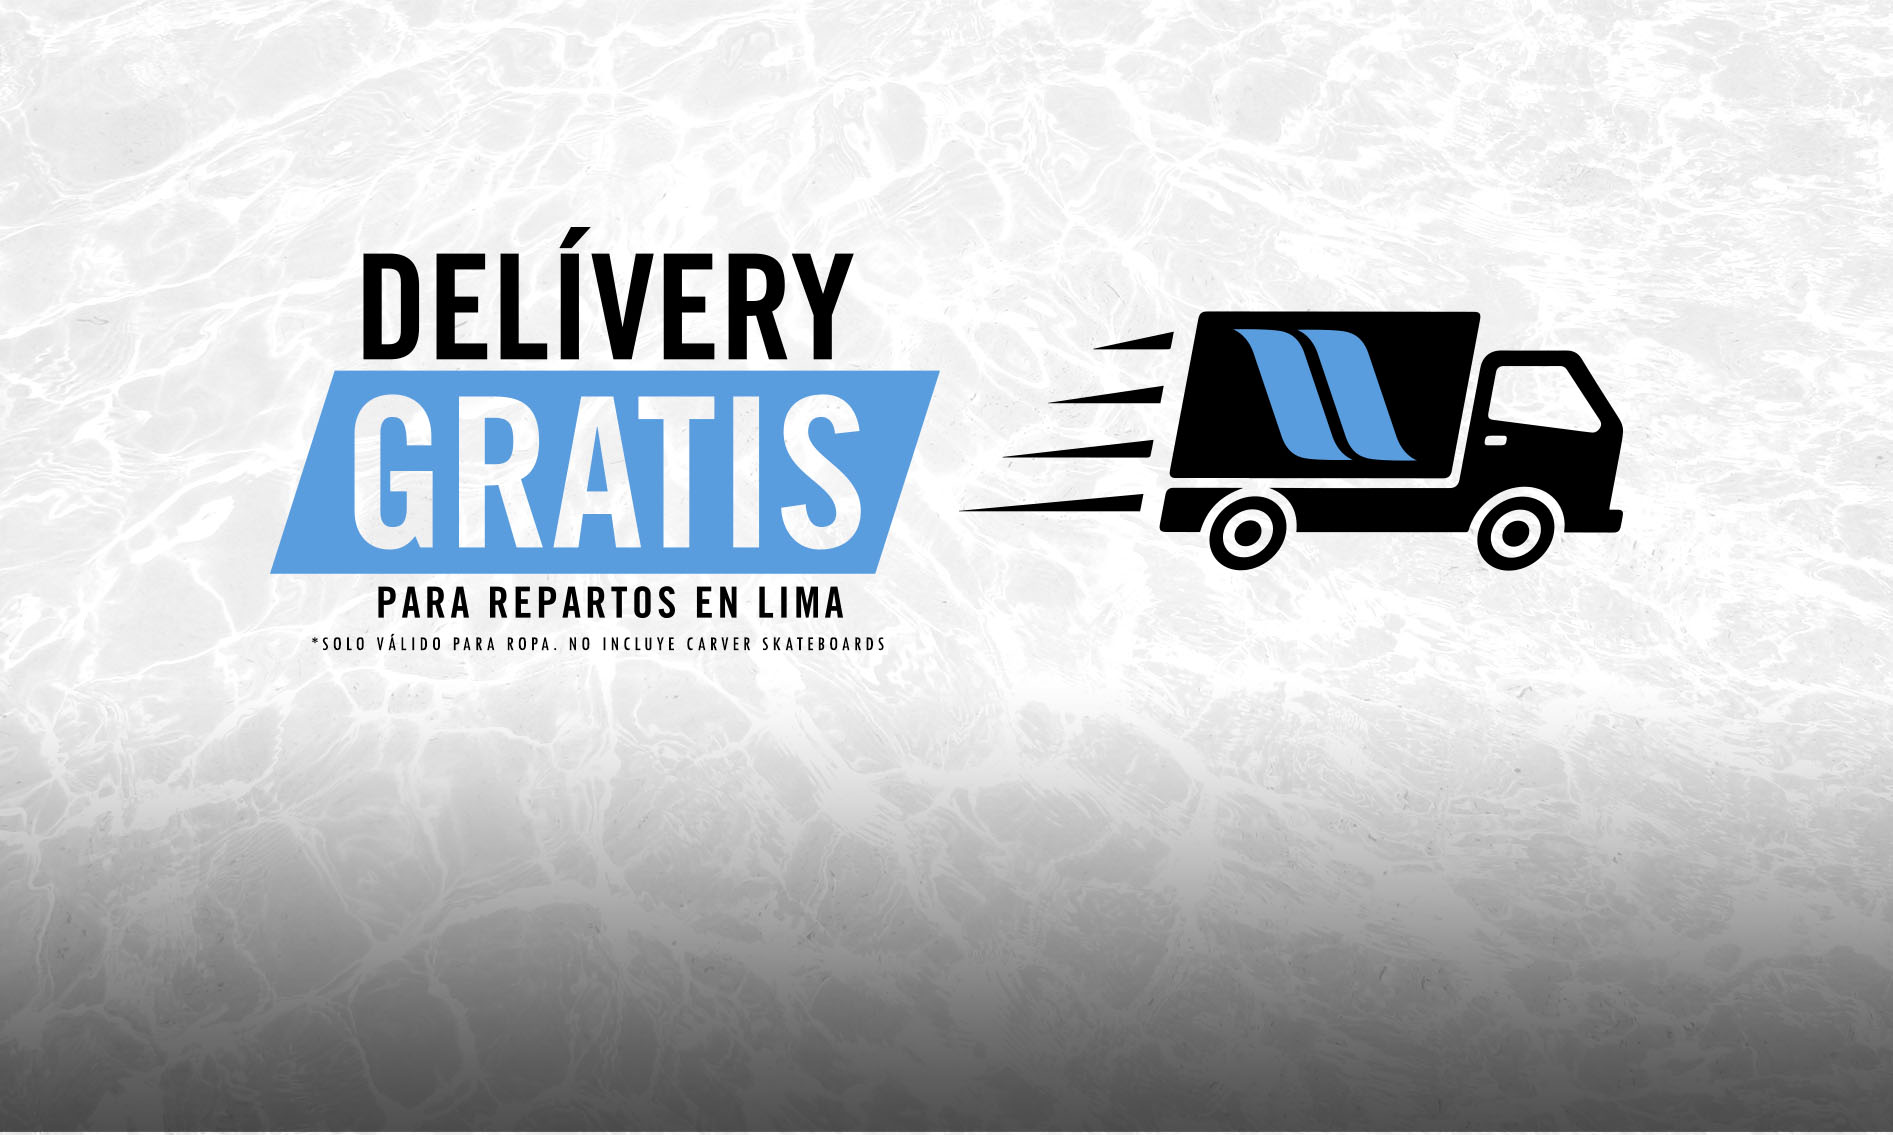 H delivery